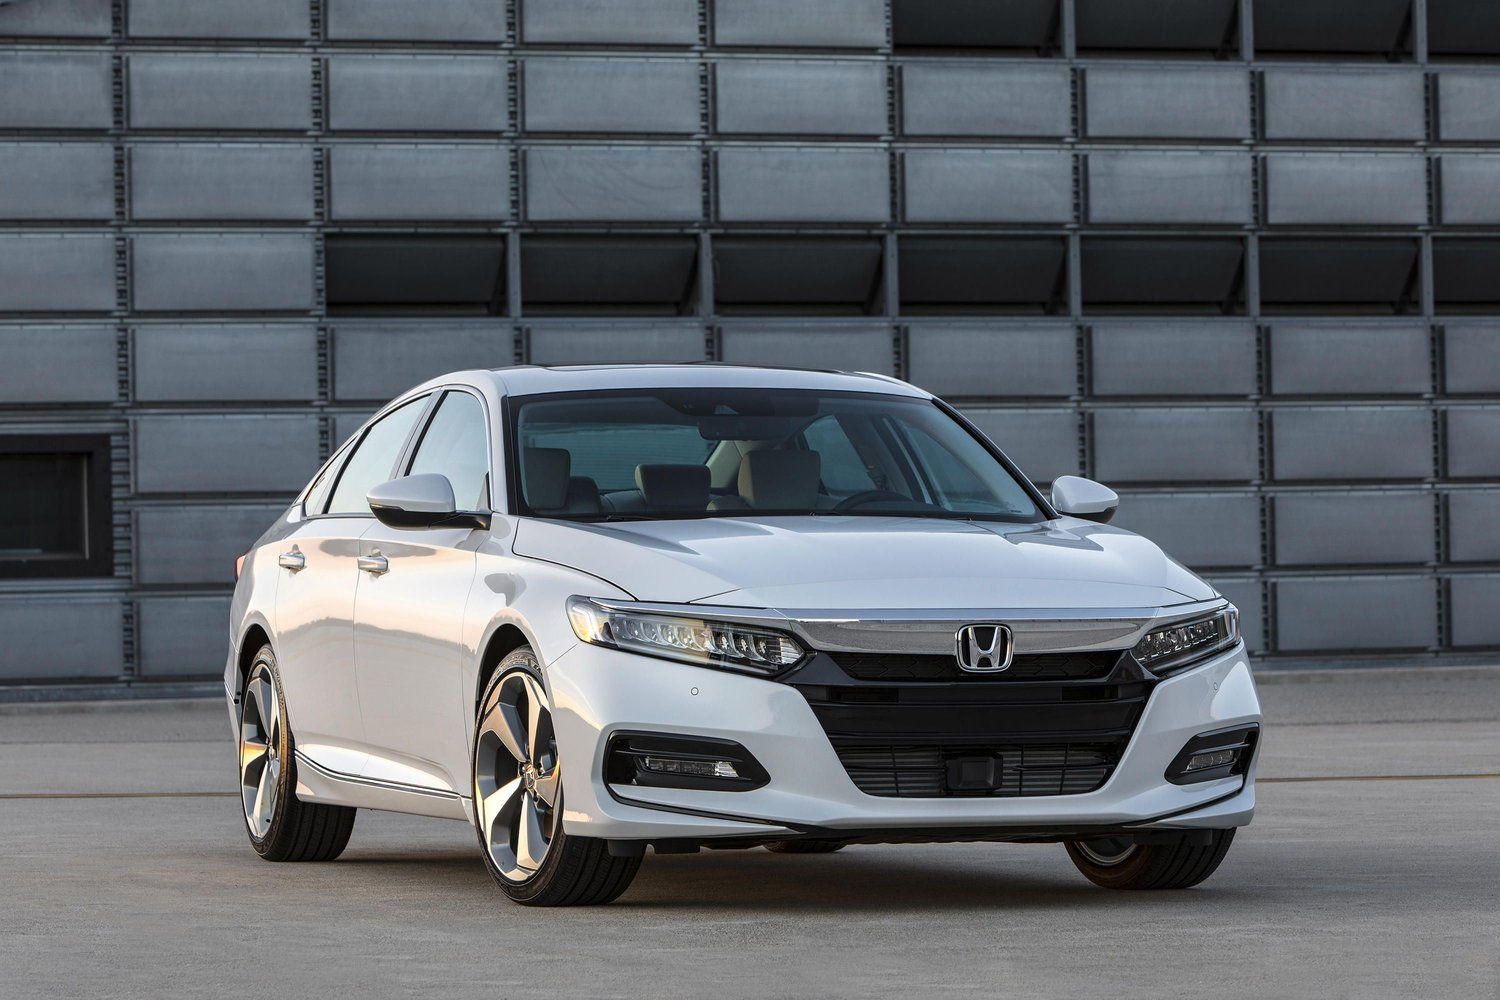 Sibling Rivalry All New 2018 Honda Accord 416 Month Vs Acura